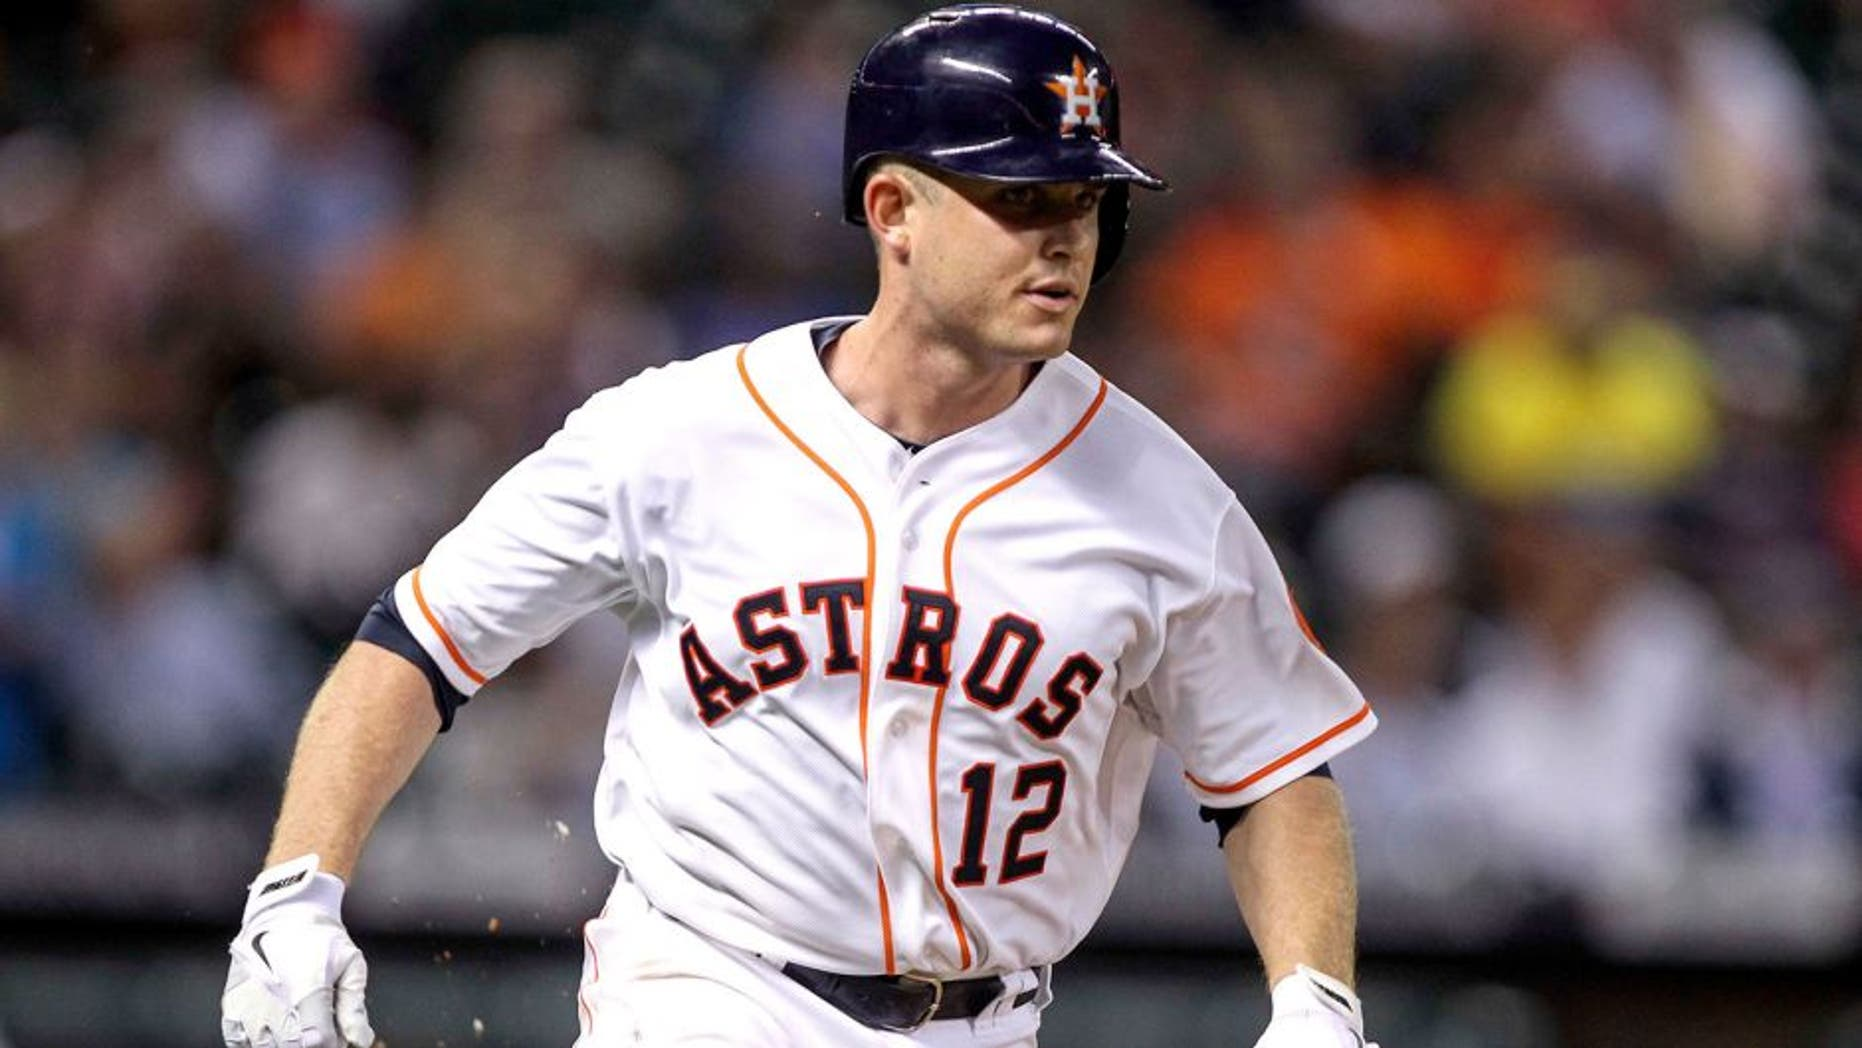 Sep 16, 2014; Houston, TX, USA; Houston Astros catcher Max Stassi (12) runs to first base with a single during the fourth inning against the Cleveland Indians at Minute Maid Park. Mandatory Credit: Troy Taormina-USA TODAY Sports